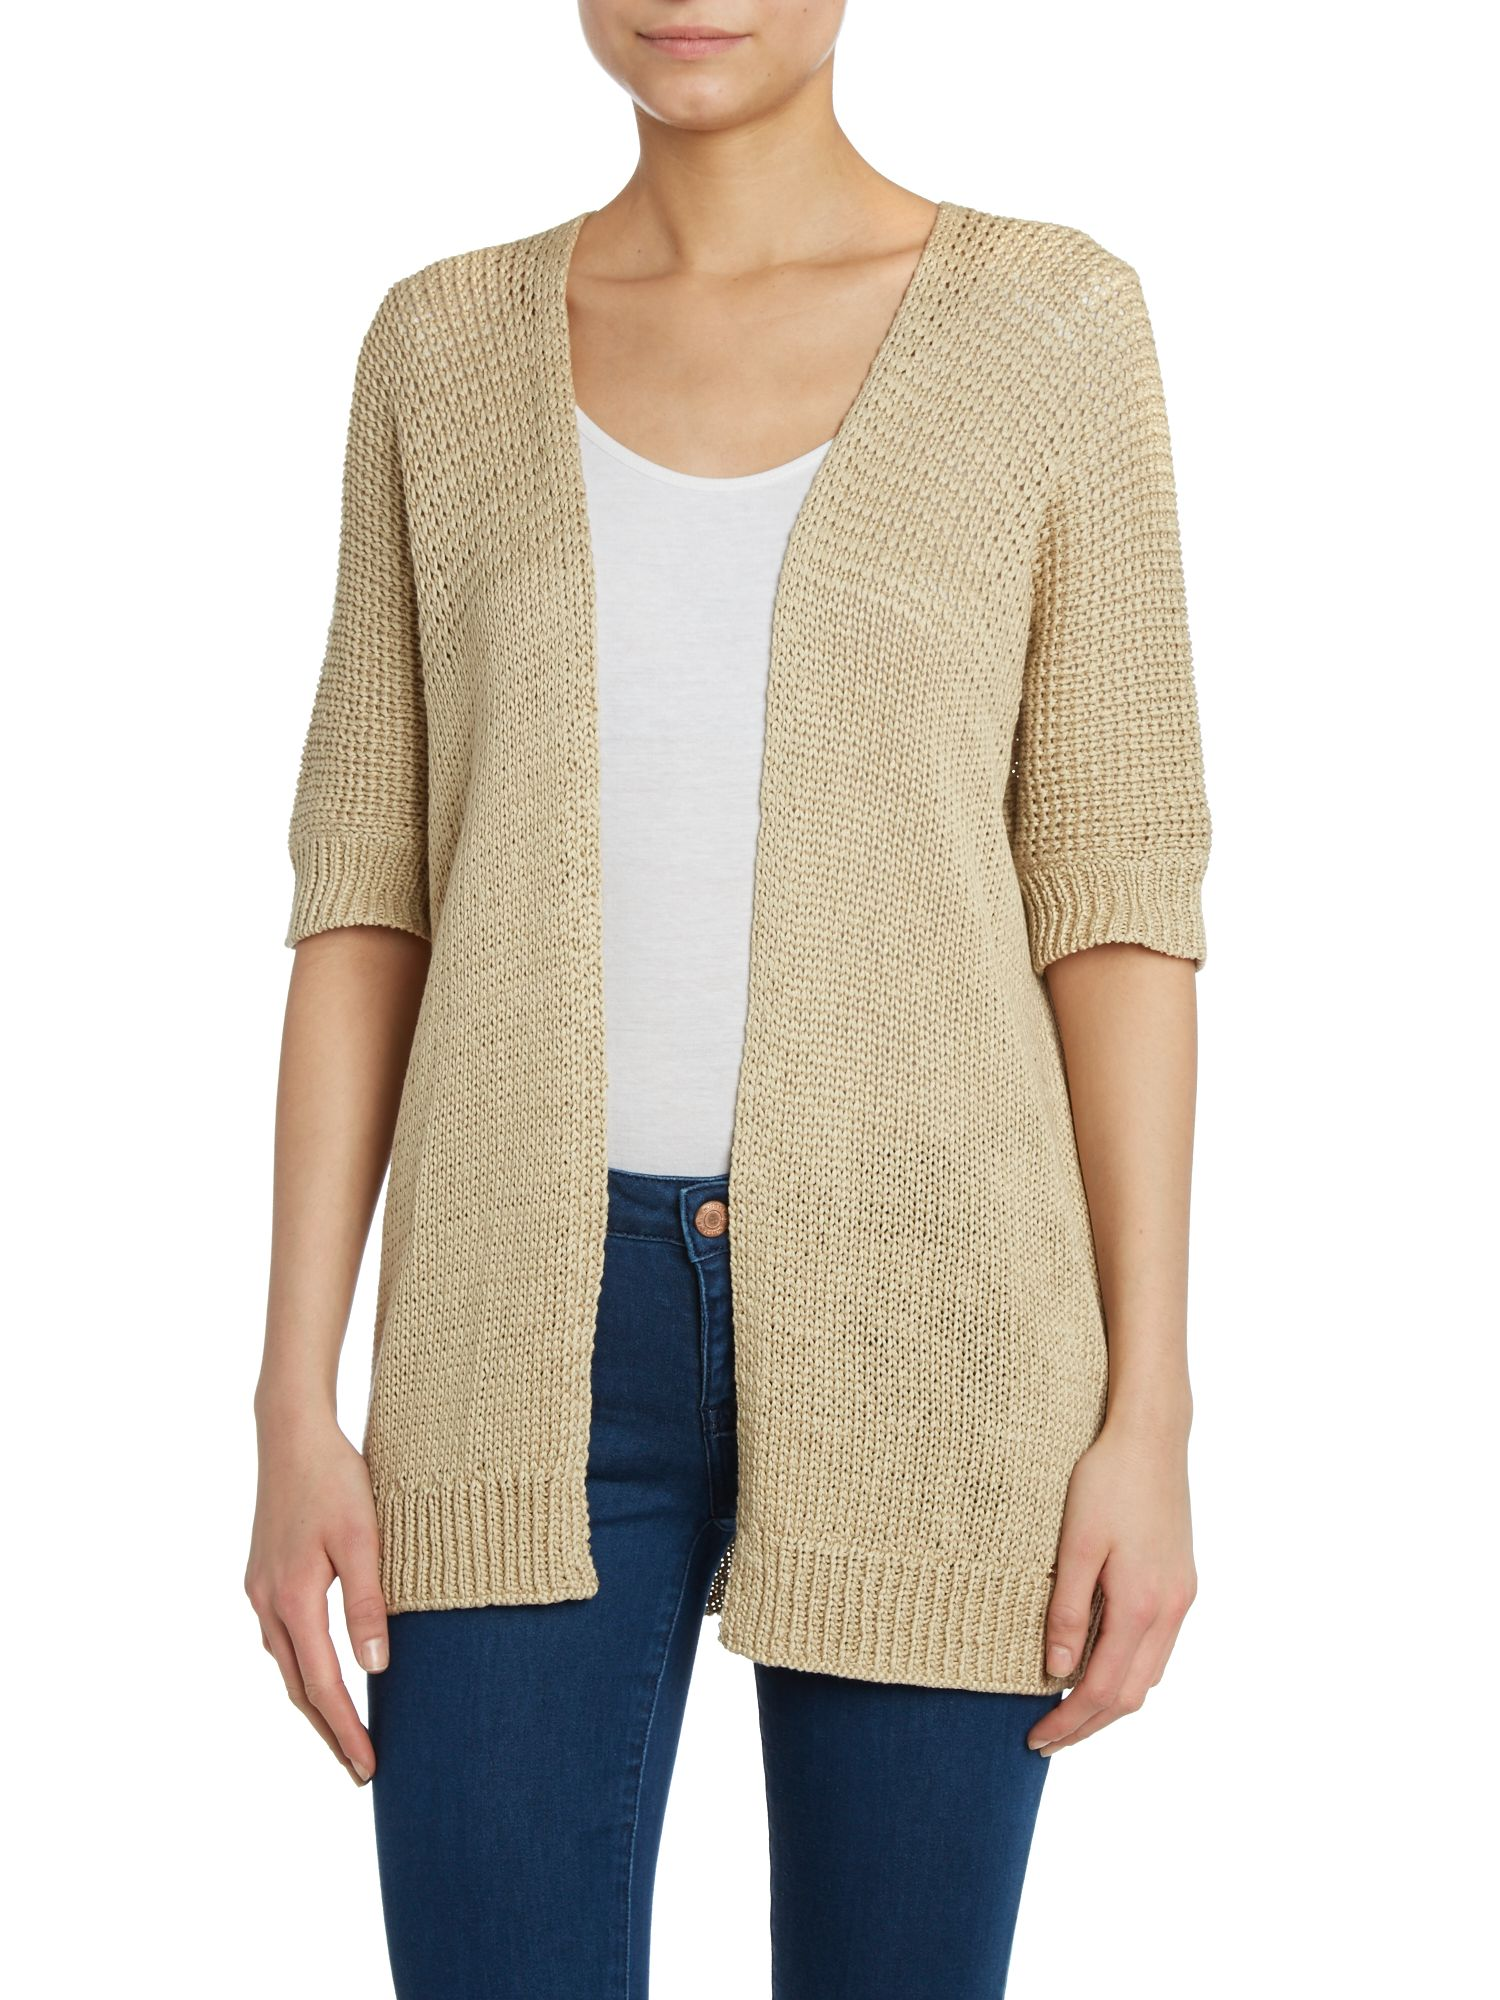 3/4 sleeved open knitted cardigan